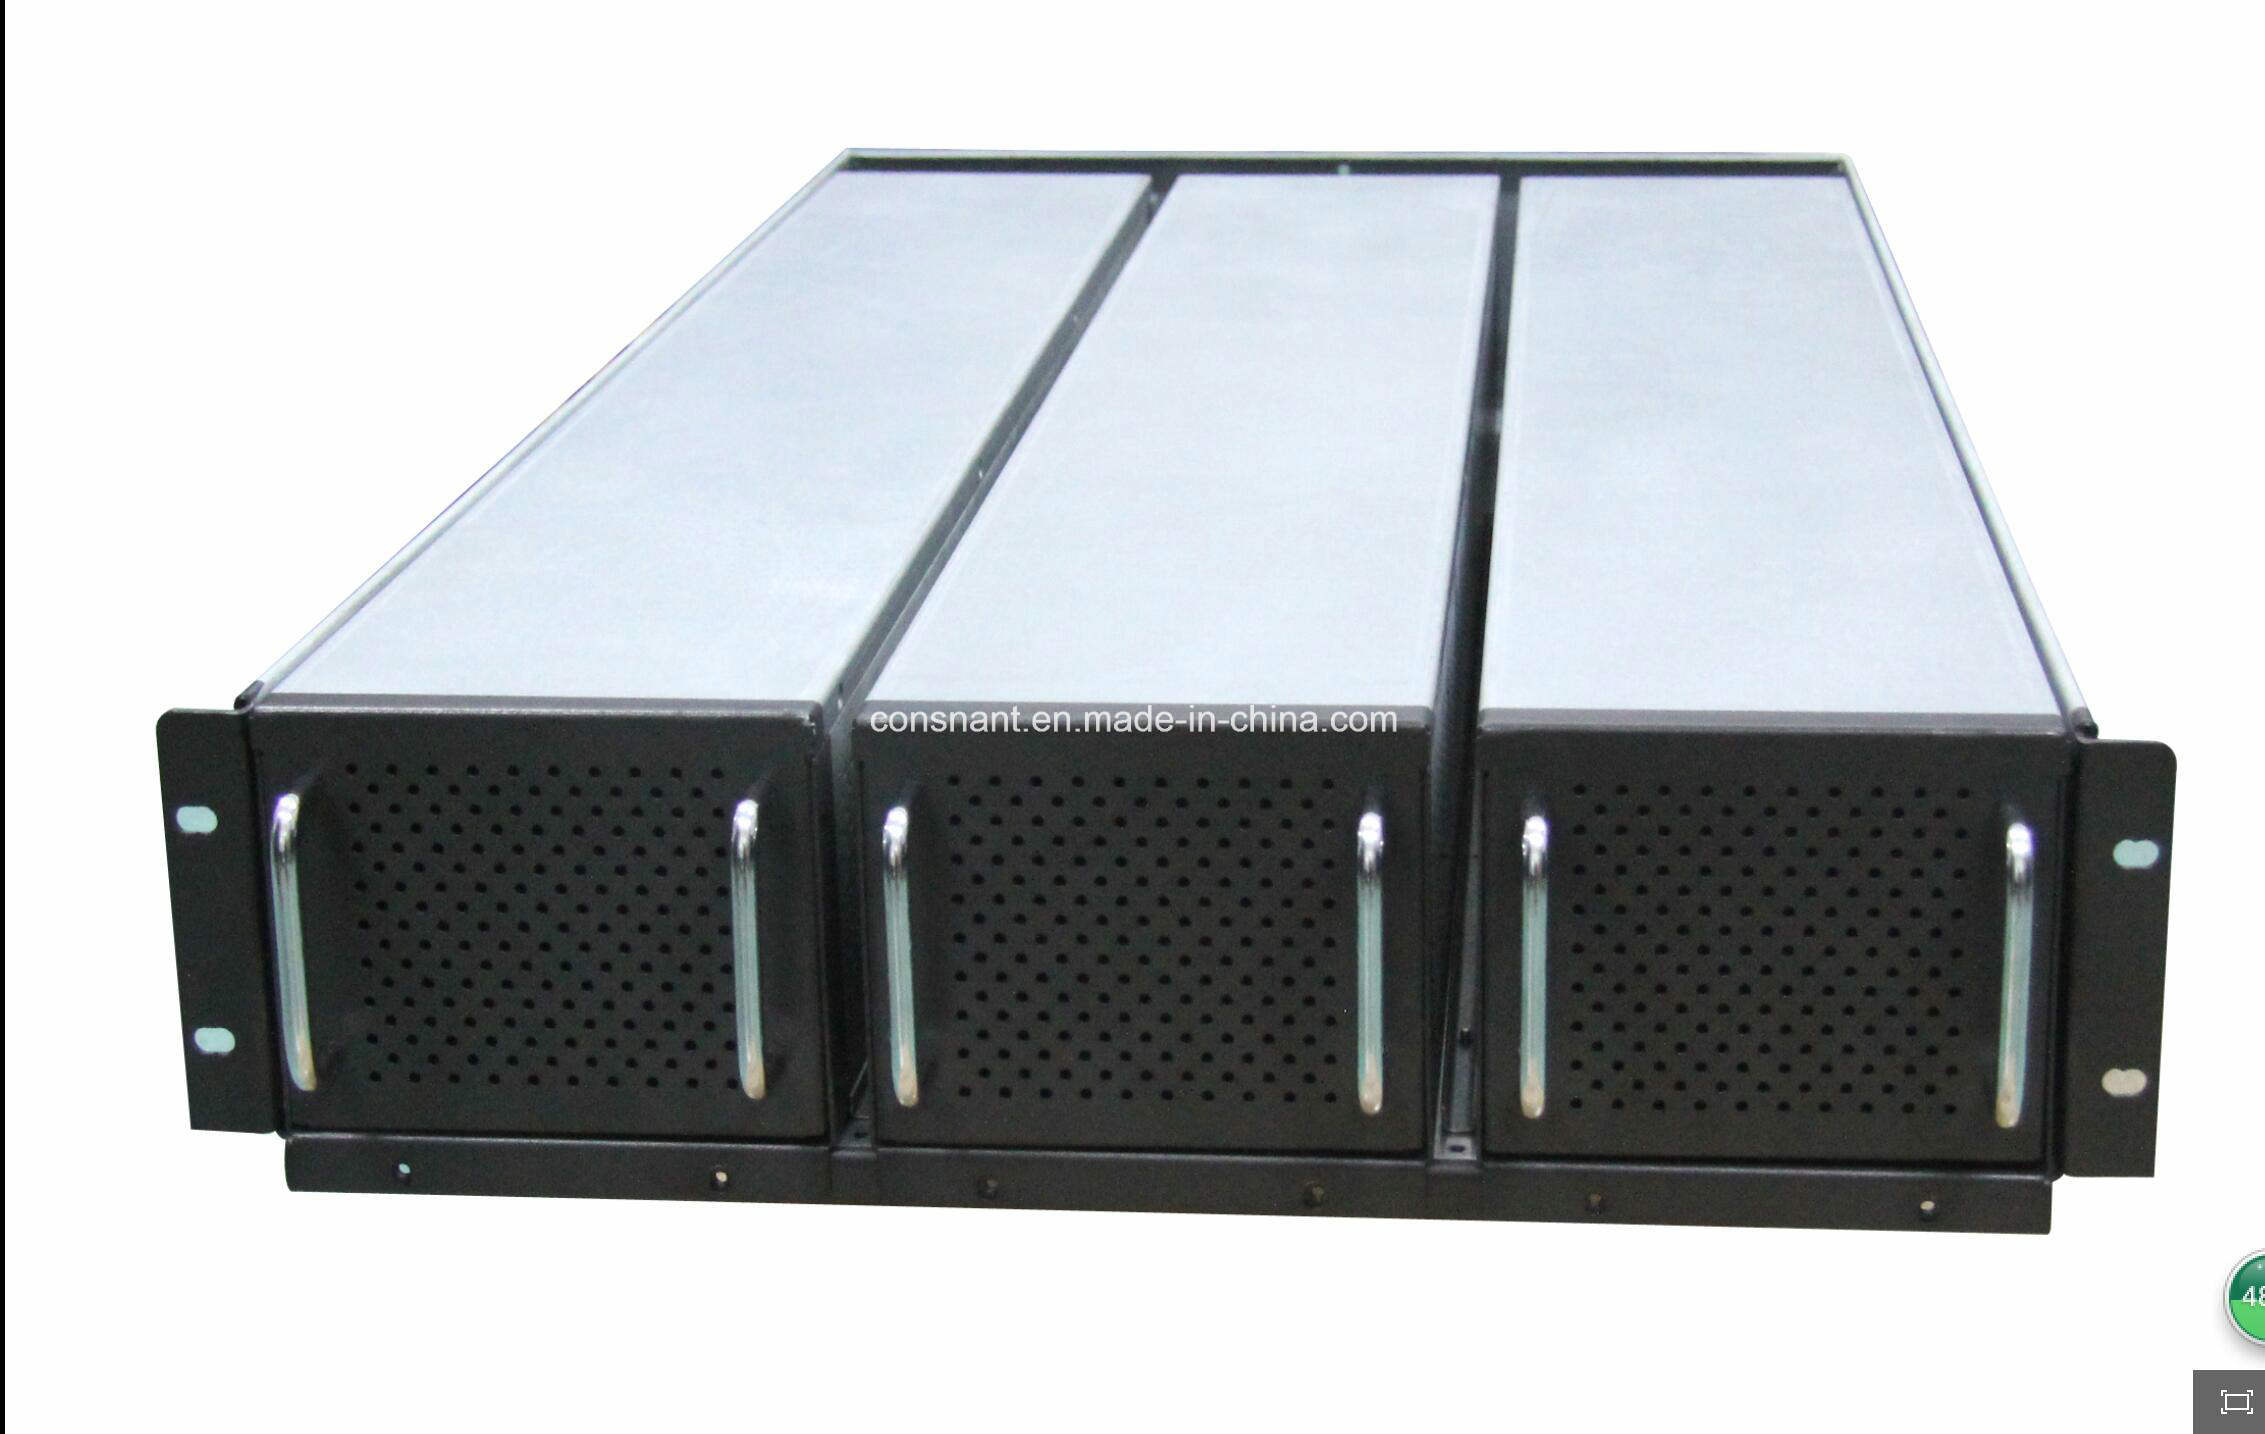 Modular Online UPS with Power Factor 0.9 20-300kVA